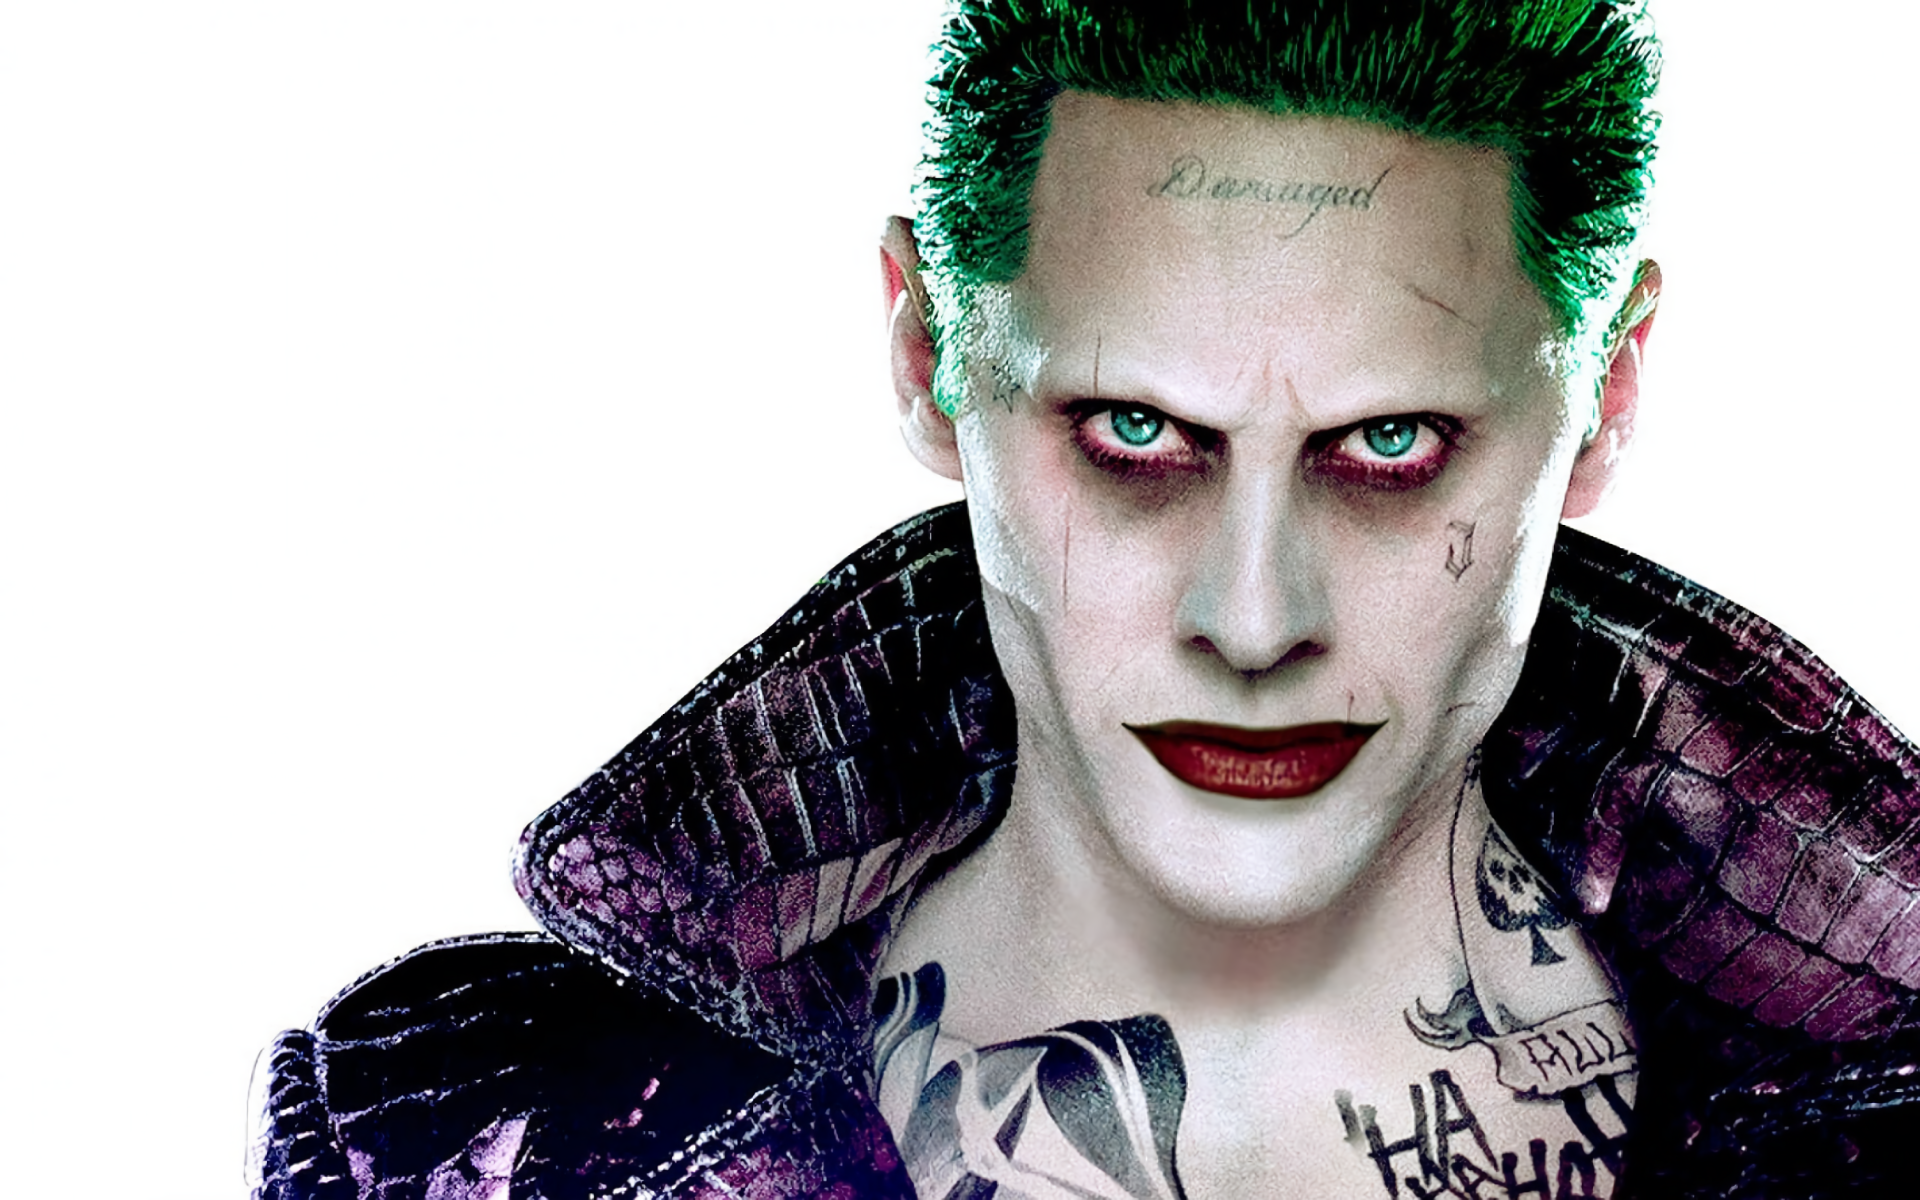 Jared leto images jared leto hd wallpaper and background photos - Movie Suicide Squad Movie Joker Jared Leto Wallpaper